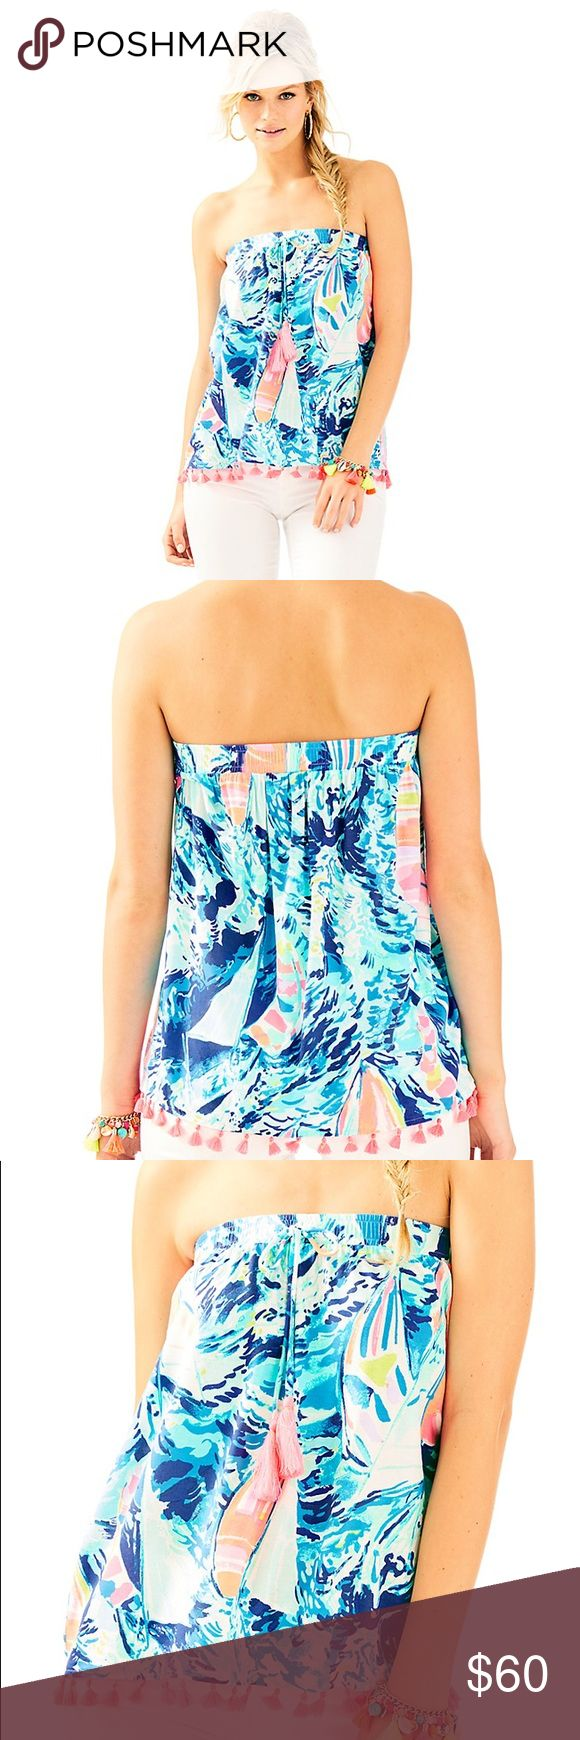 NWT Lilly Pulitzer Palma Tube Top Hey Bay Bay Blue Brand new in plastic. Print is sparkling blue hey bay bay with sailboats. Feel free to bundle and make an offer! Lilly Pulitzer Tops